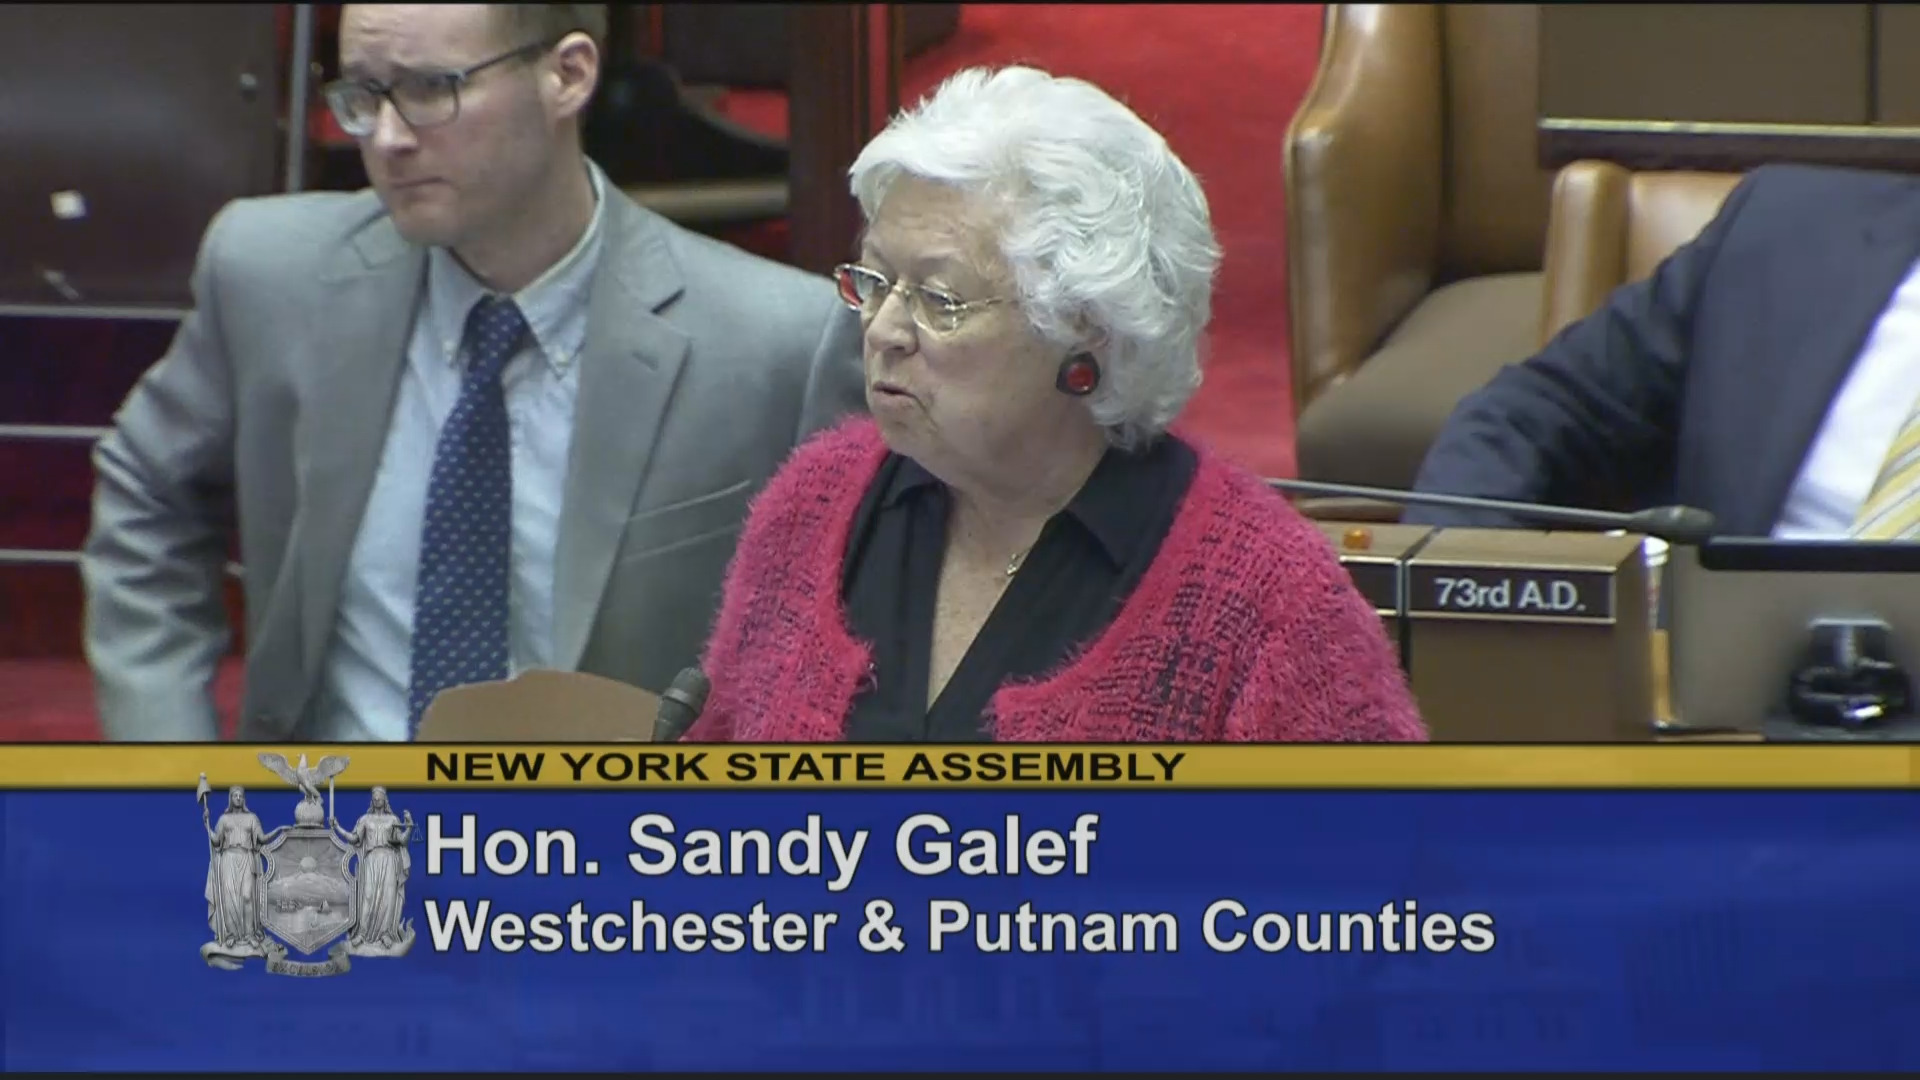 Assemblywoman Galef Introduces Legislation on Copyright Claims